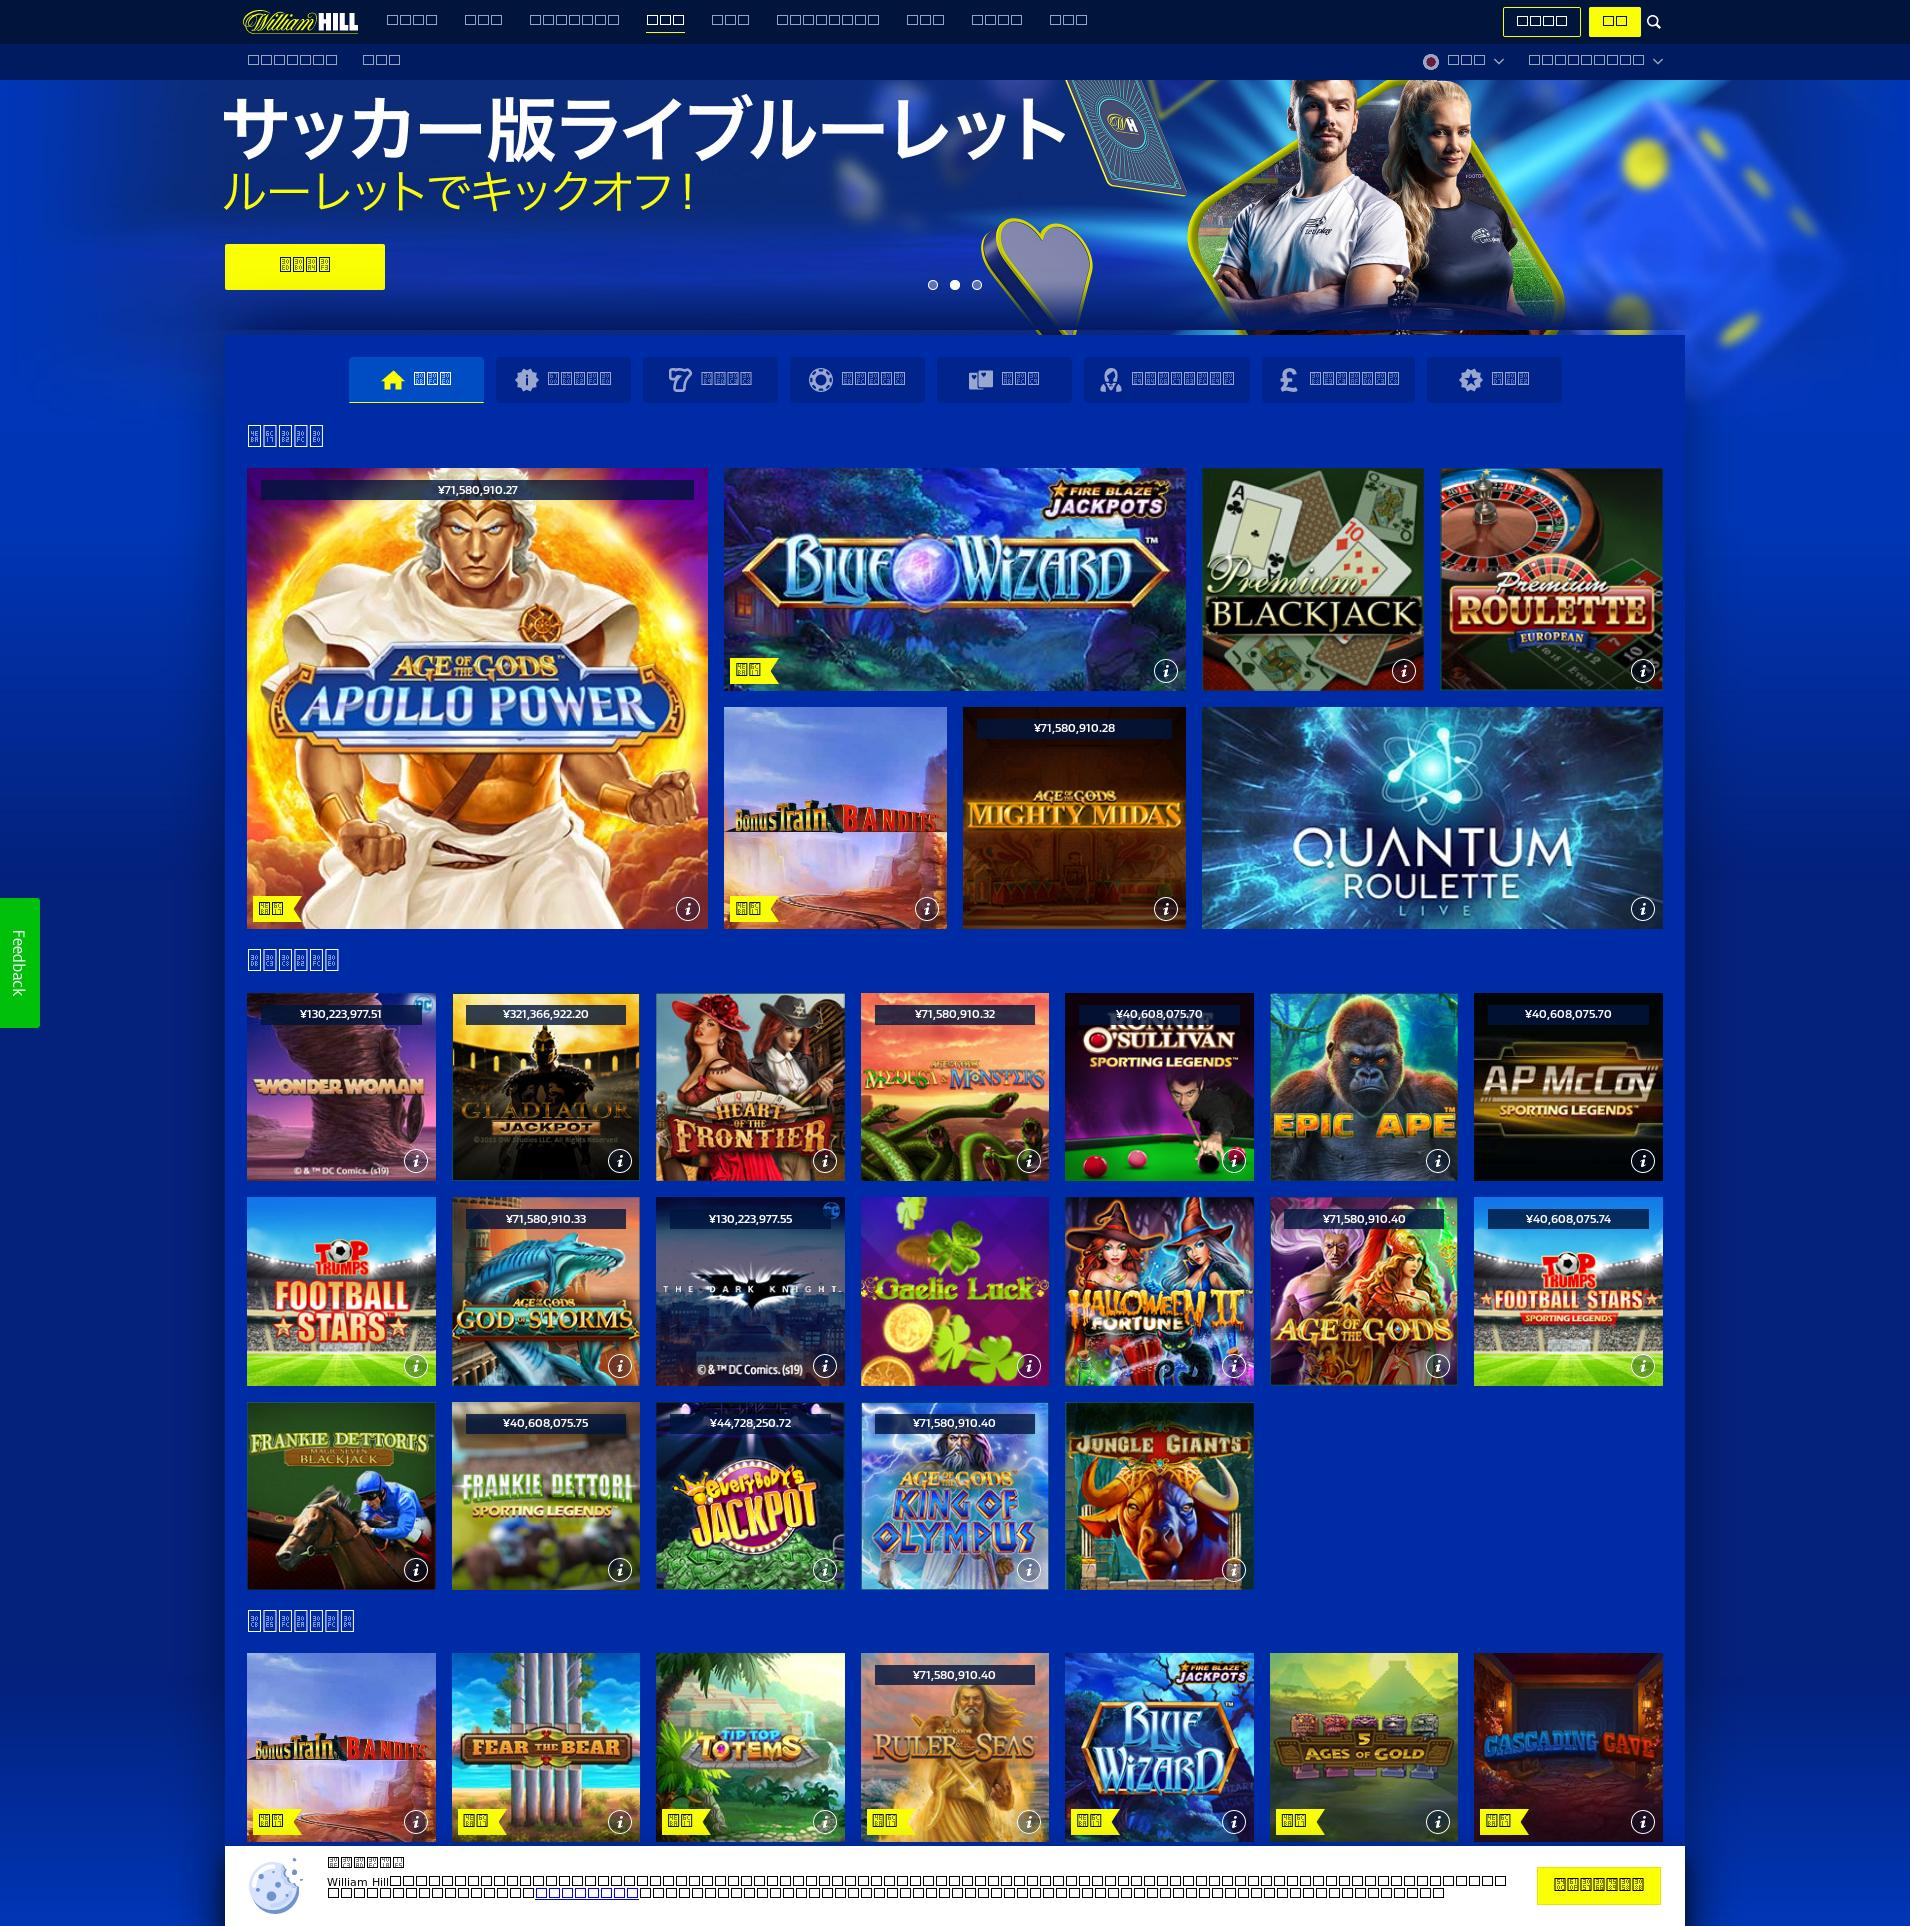 Casino screen Lobby 2019-10-17 for Japan